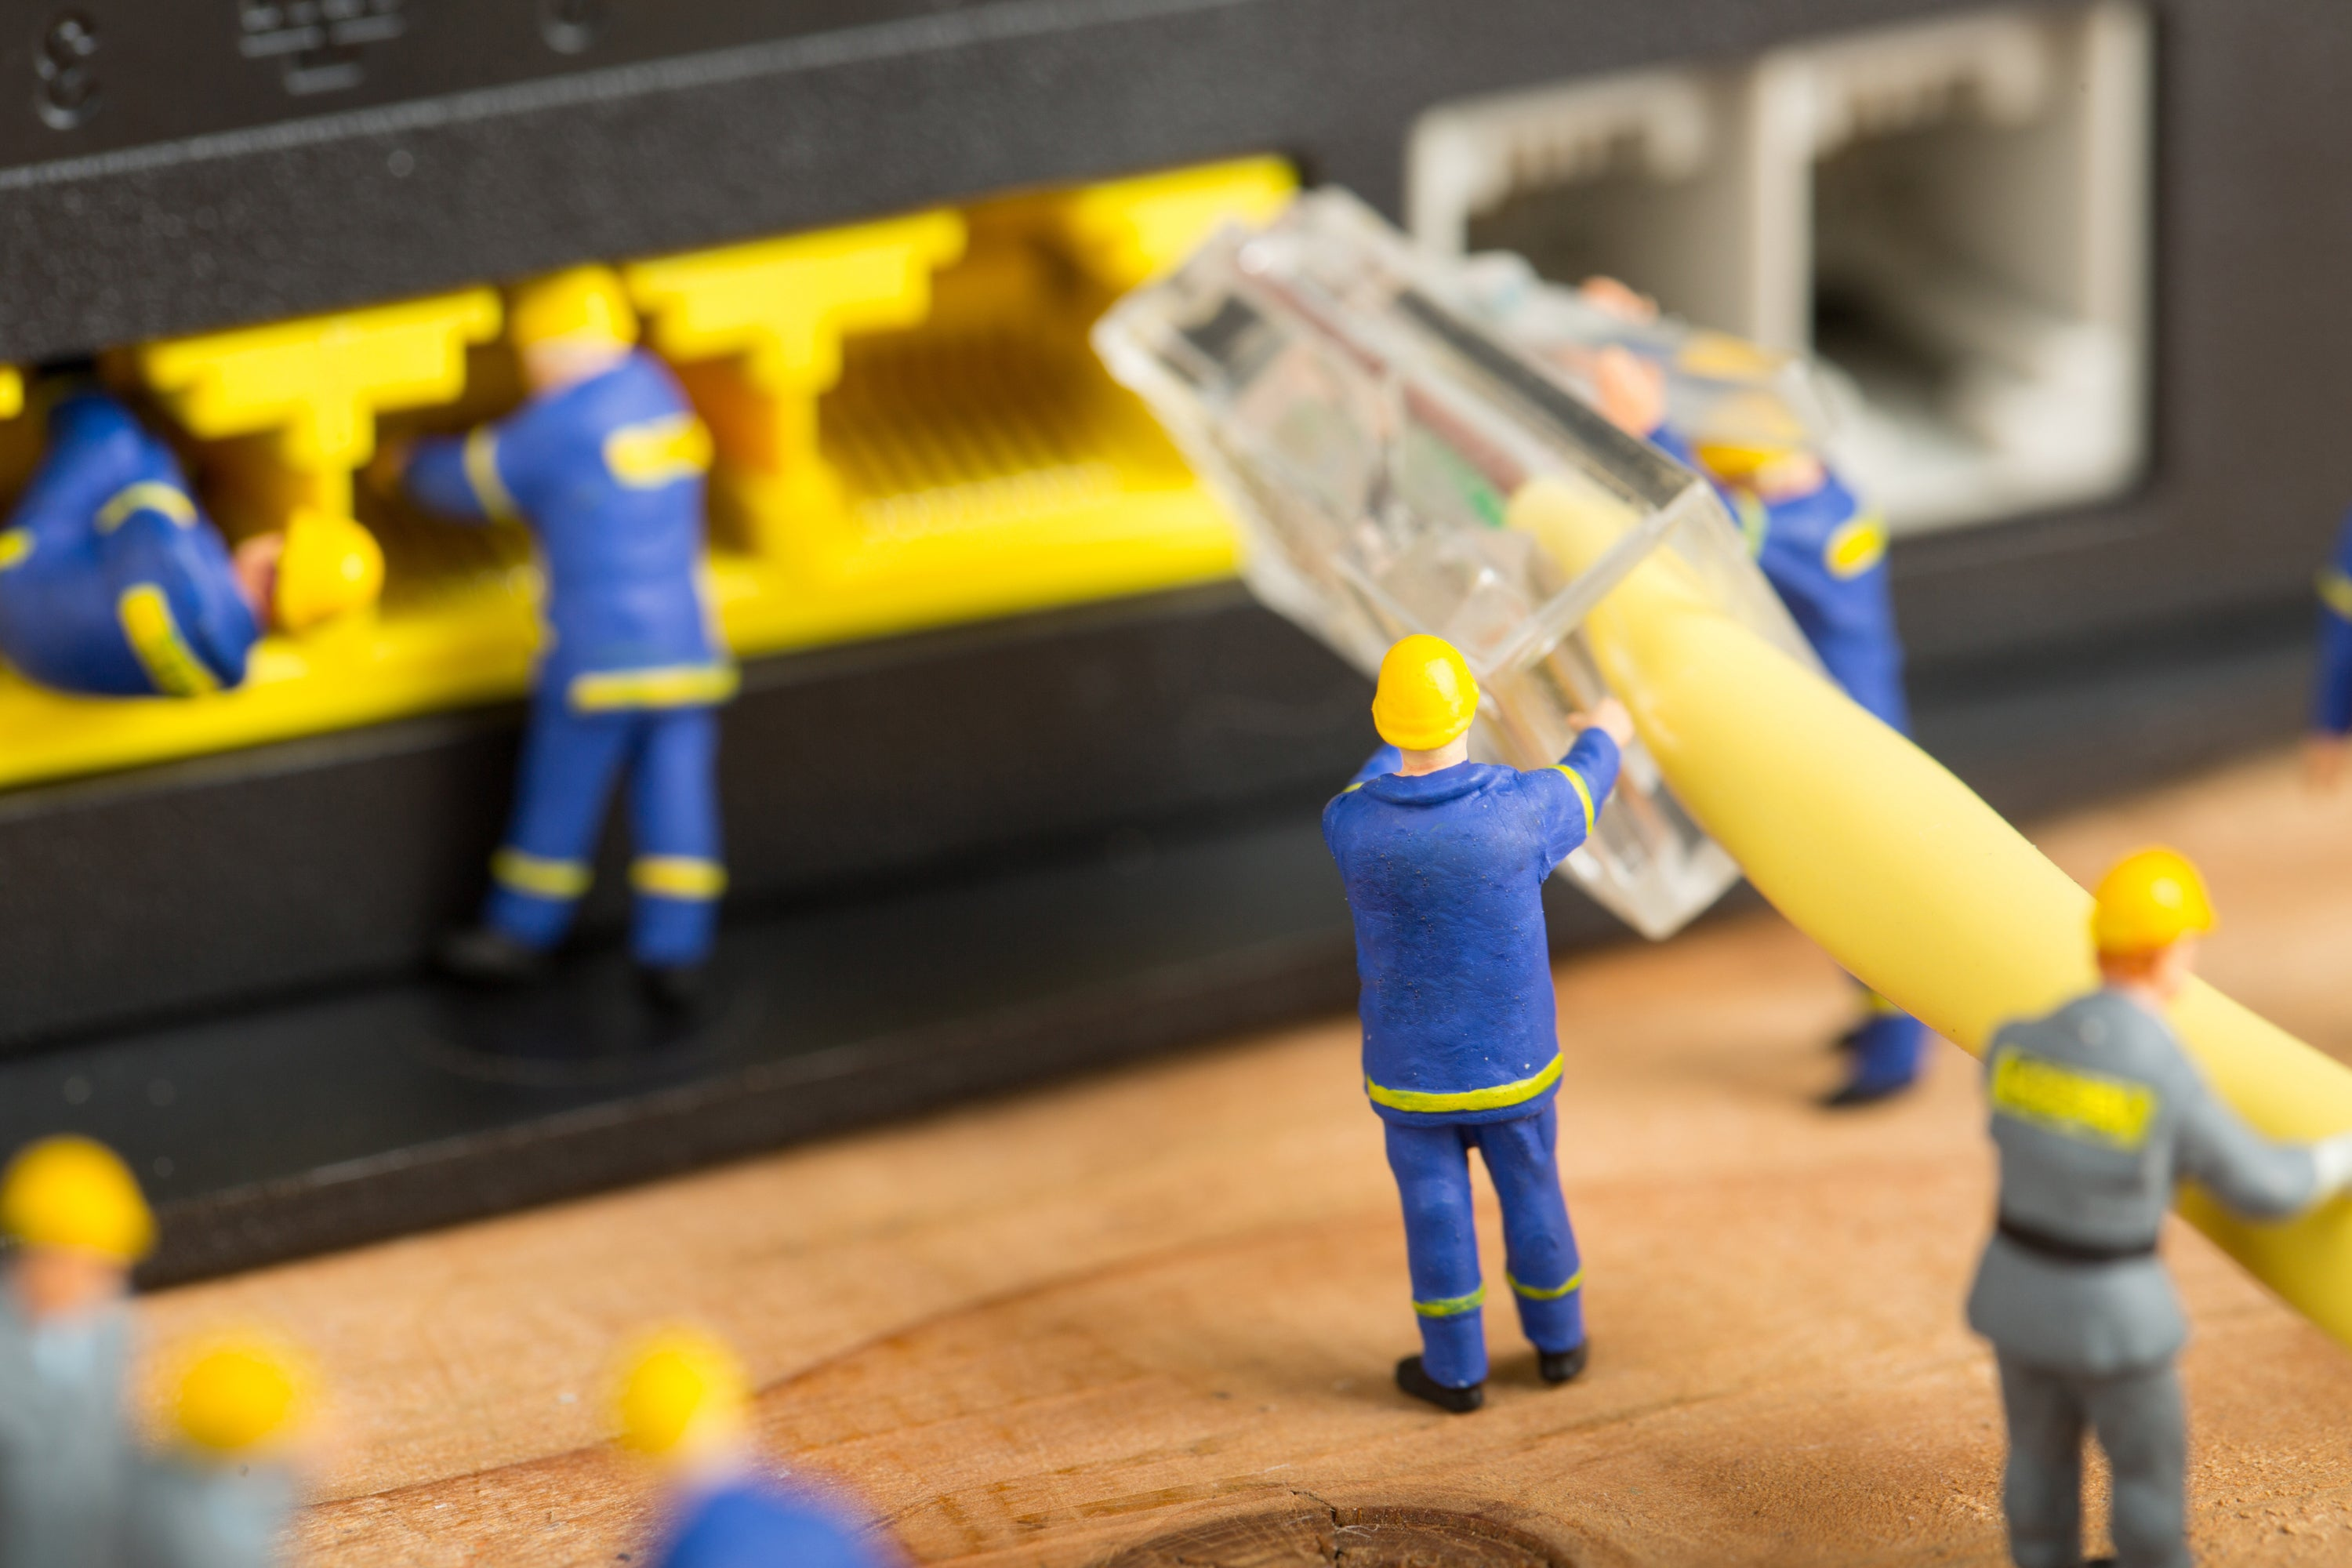 A handful of miniature workers are connecting a huge Ethernet cable to a network port.